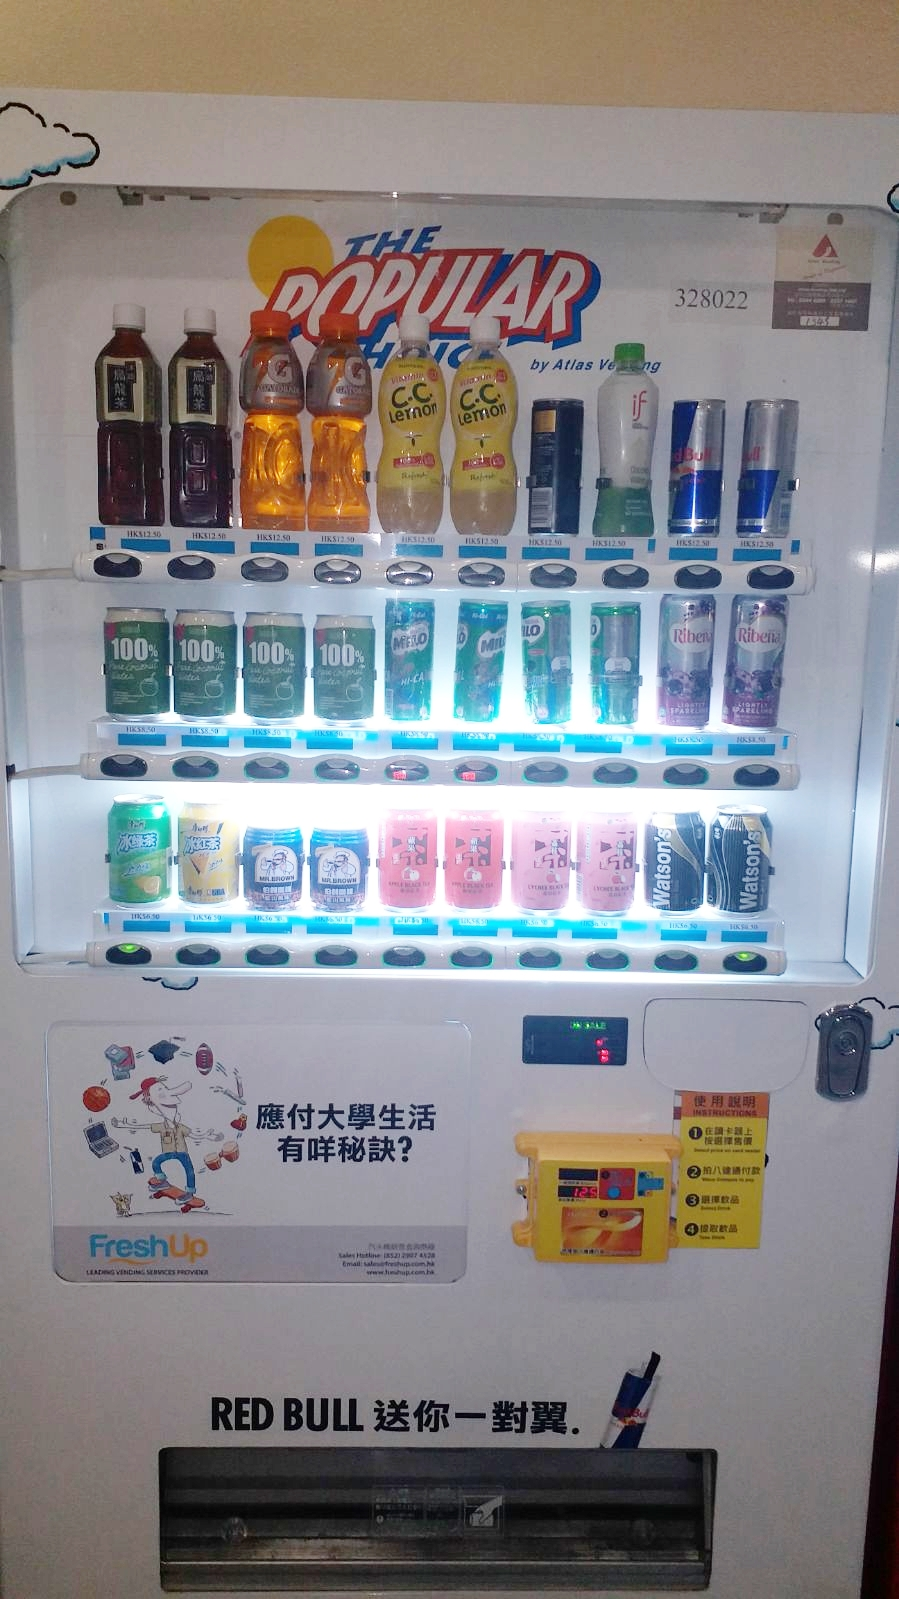 Freshup, vending machine hk, interactive, food, beverage, smart retail, convenient, vending services, professional, universities, HKBU, college